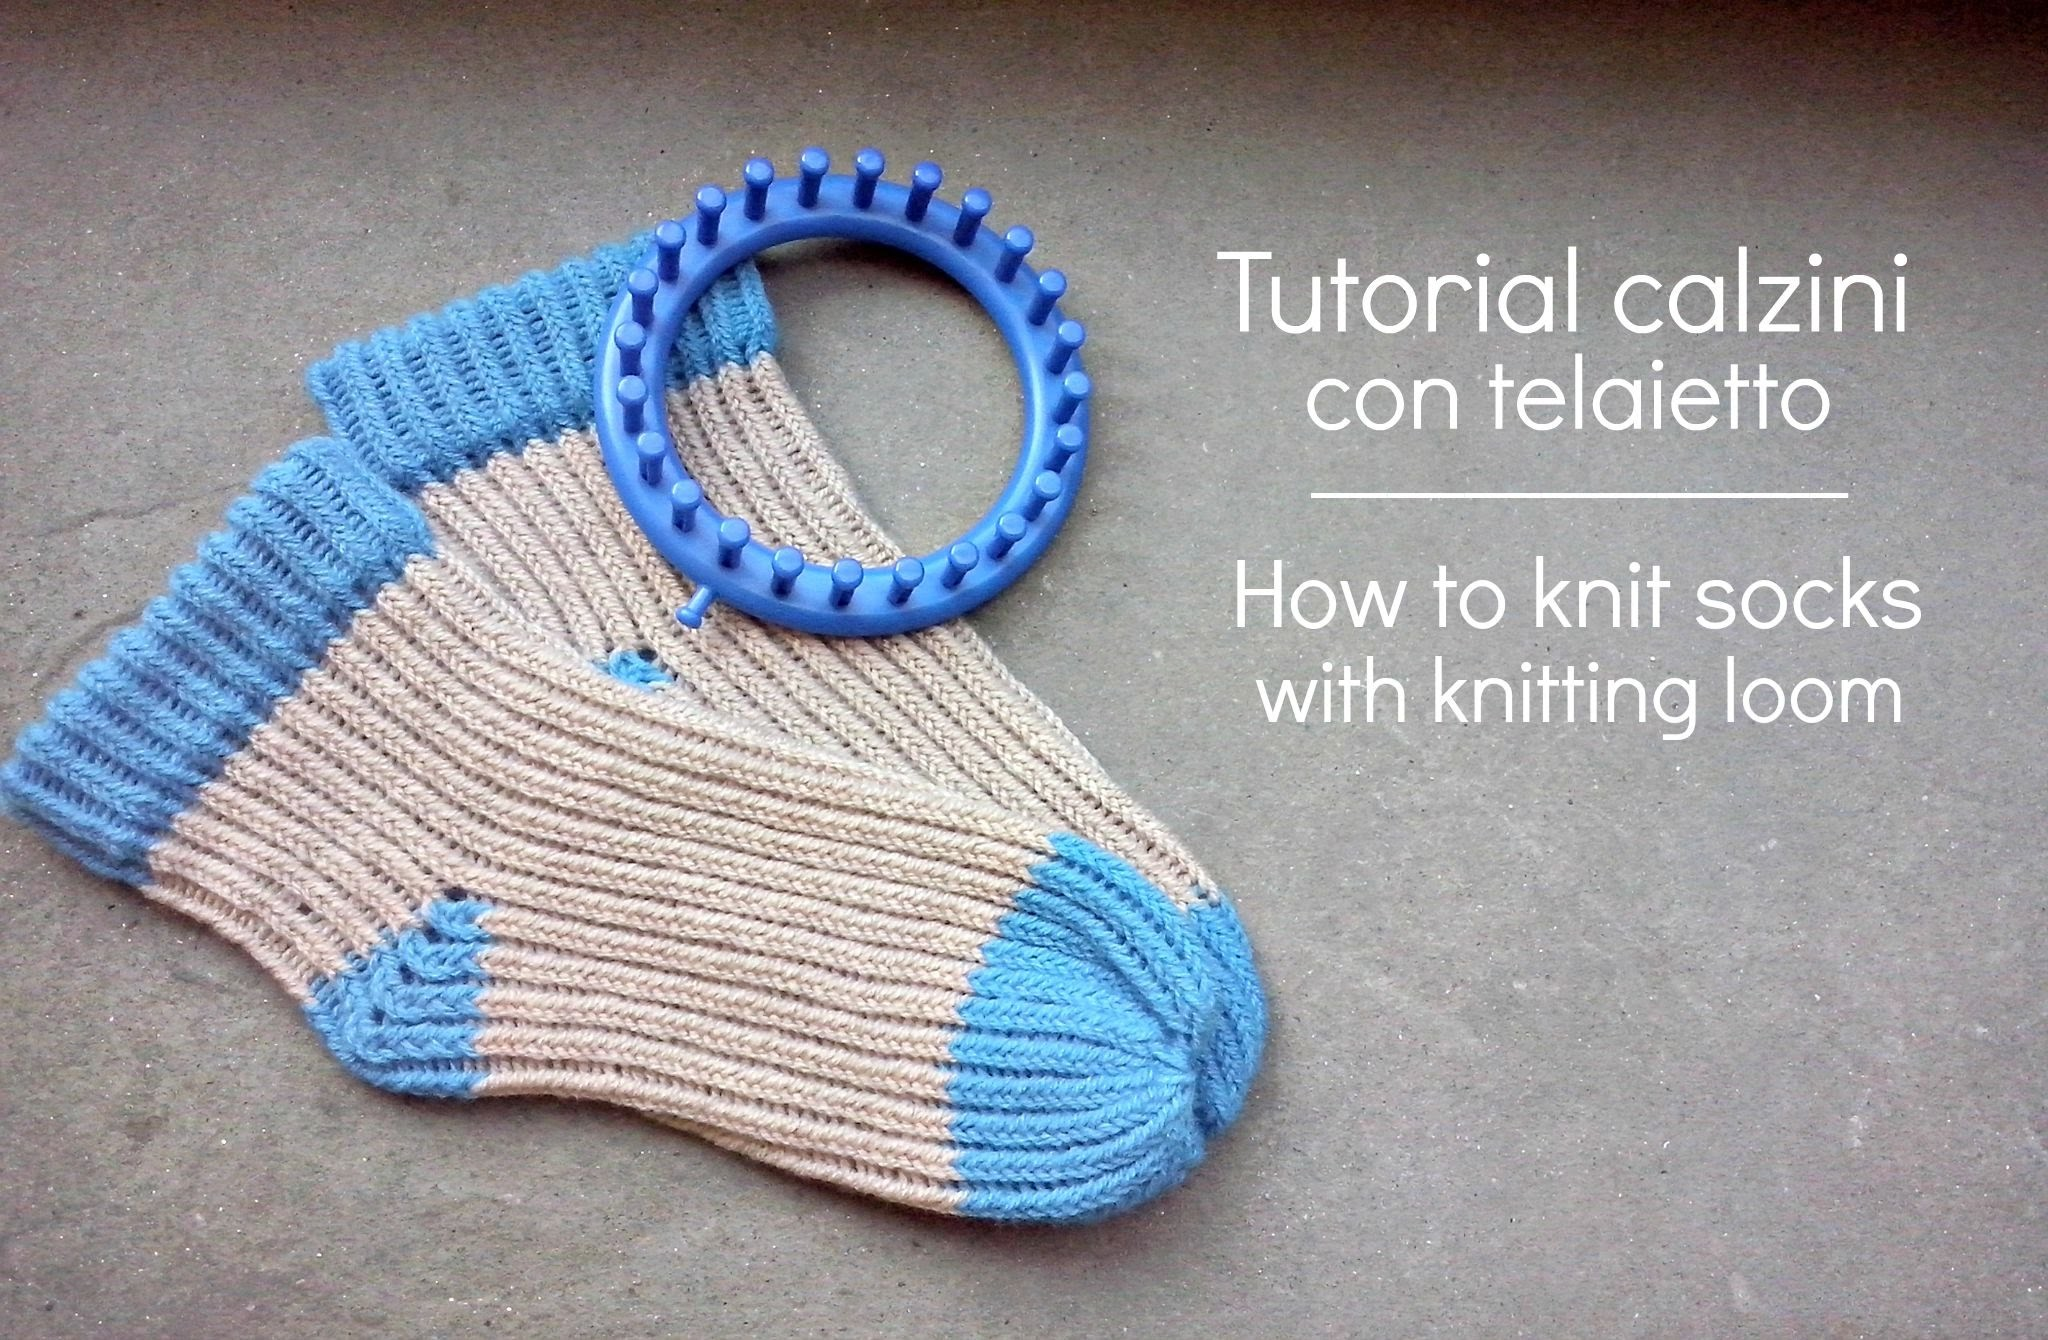 Tutorial calzino con telaietto | How to knit socks with knitting loom